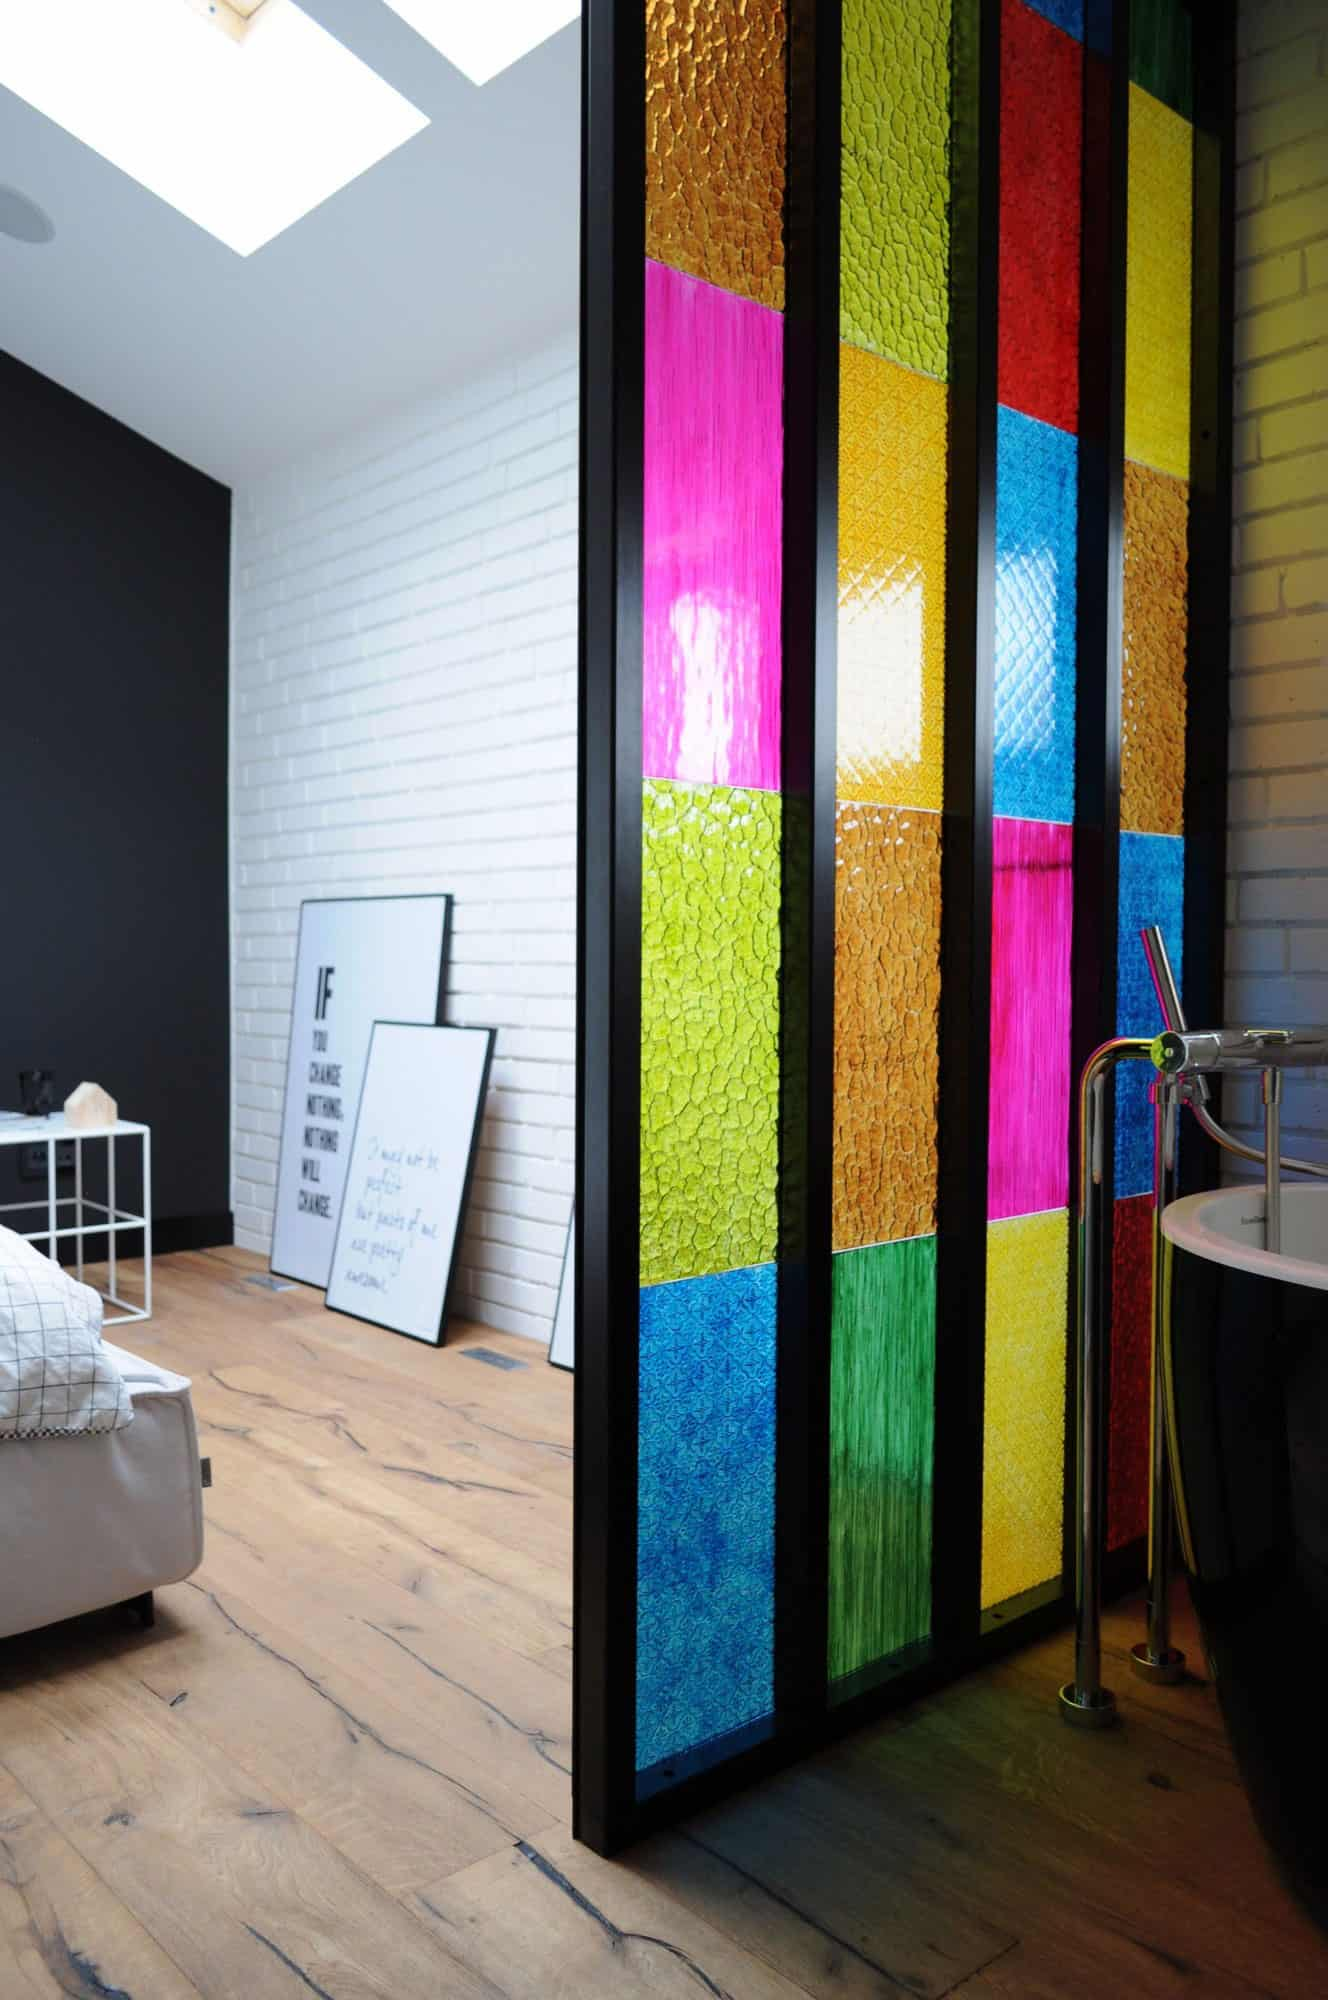 Bathroom Partitions Ideas bedroom bathroom partition in colored plastic panels - diy idea